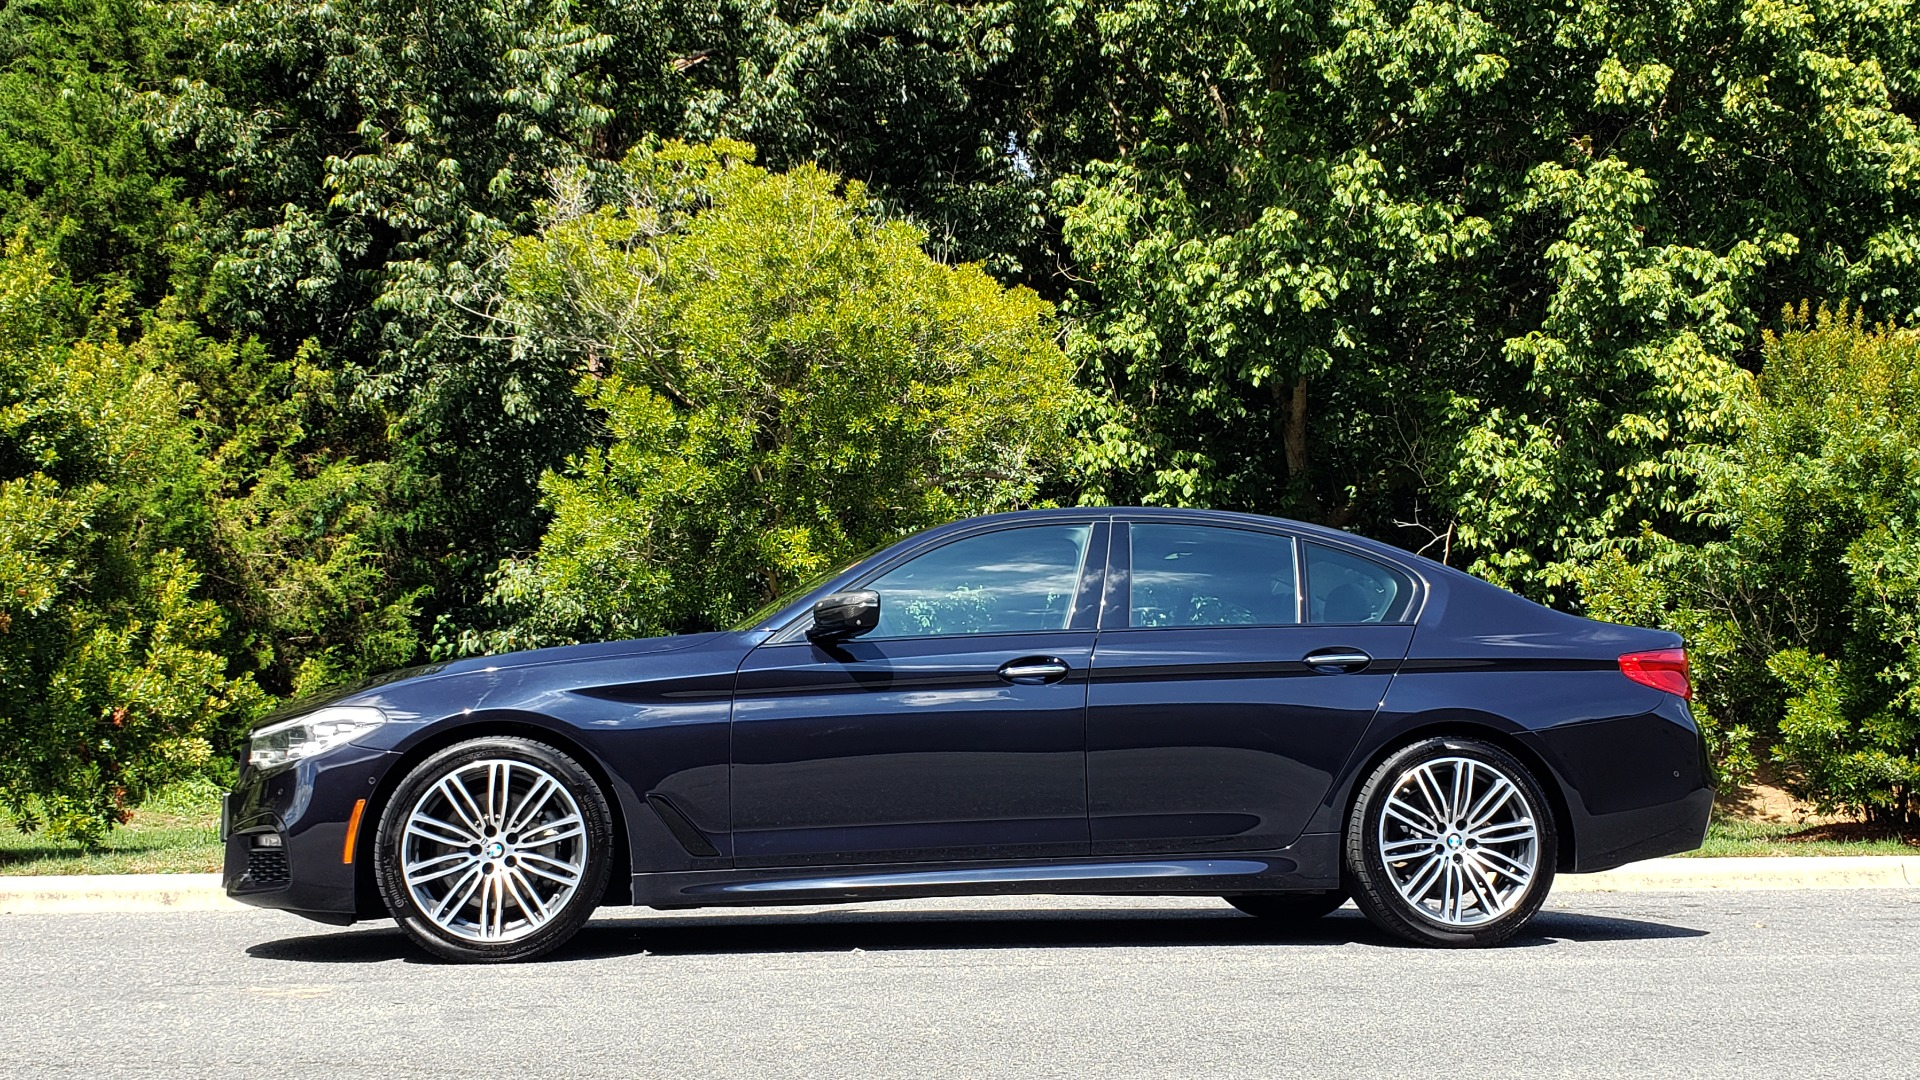 Used 2017 BMW 5 SERIES 540I XDRIVE PREMIUM / NAV / DRVR ASST PLUS / CLD WTHR / SUNROOF / REARVIEW for sale Sold at Formula Imports in Charlotte NC 28227 2